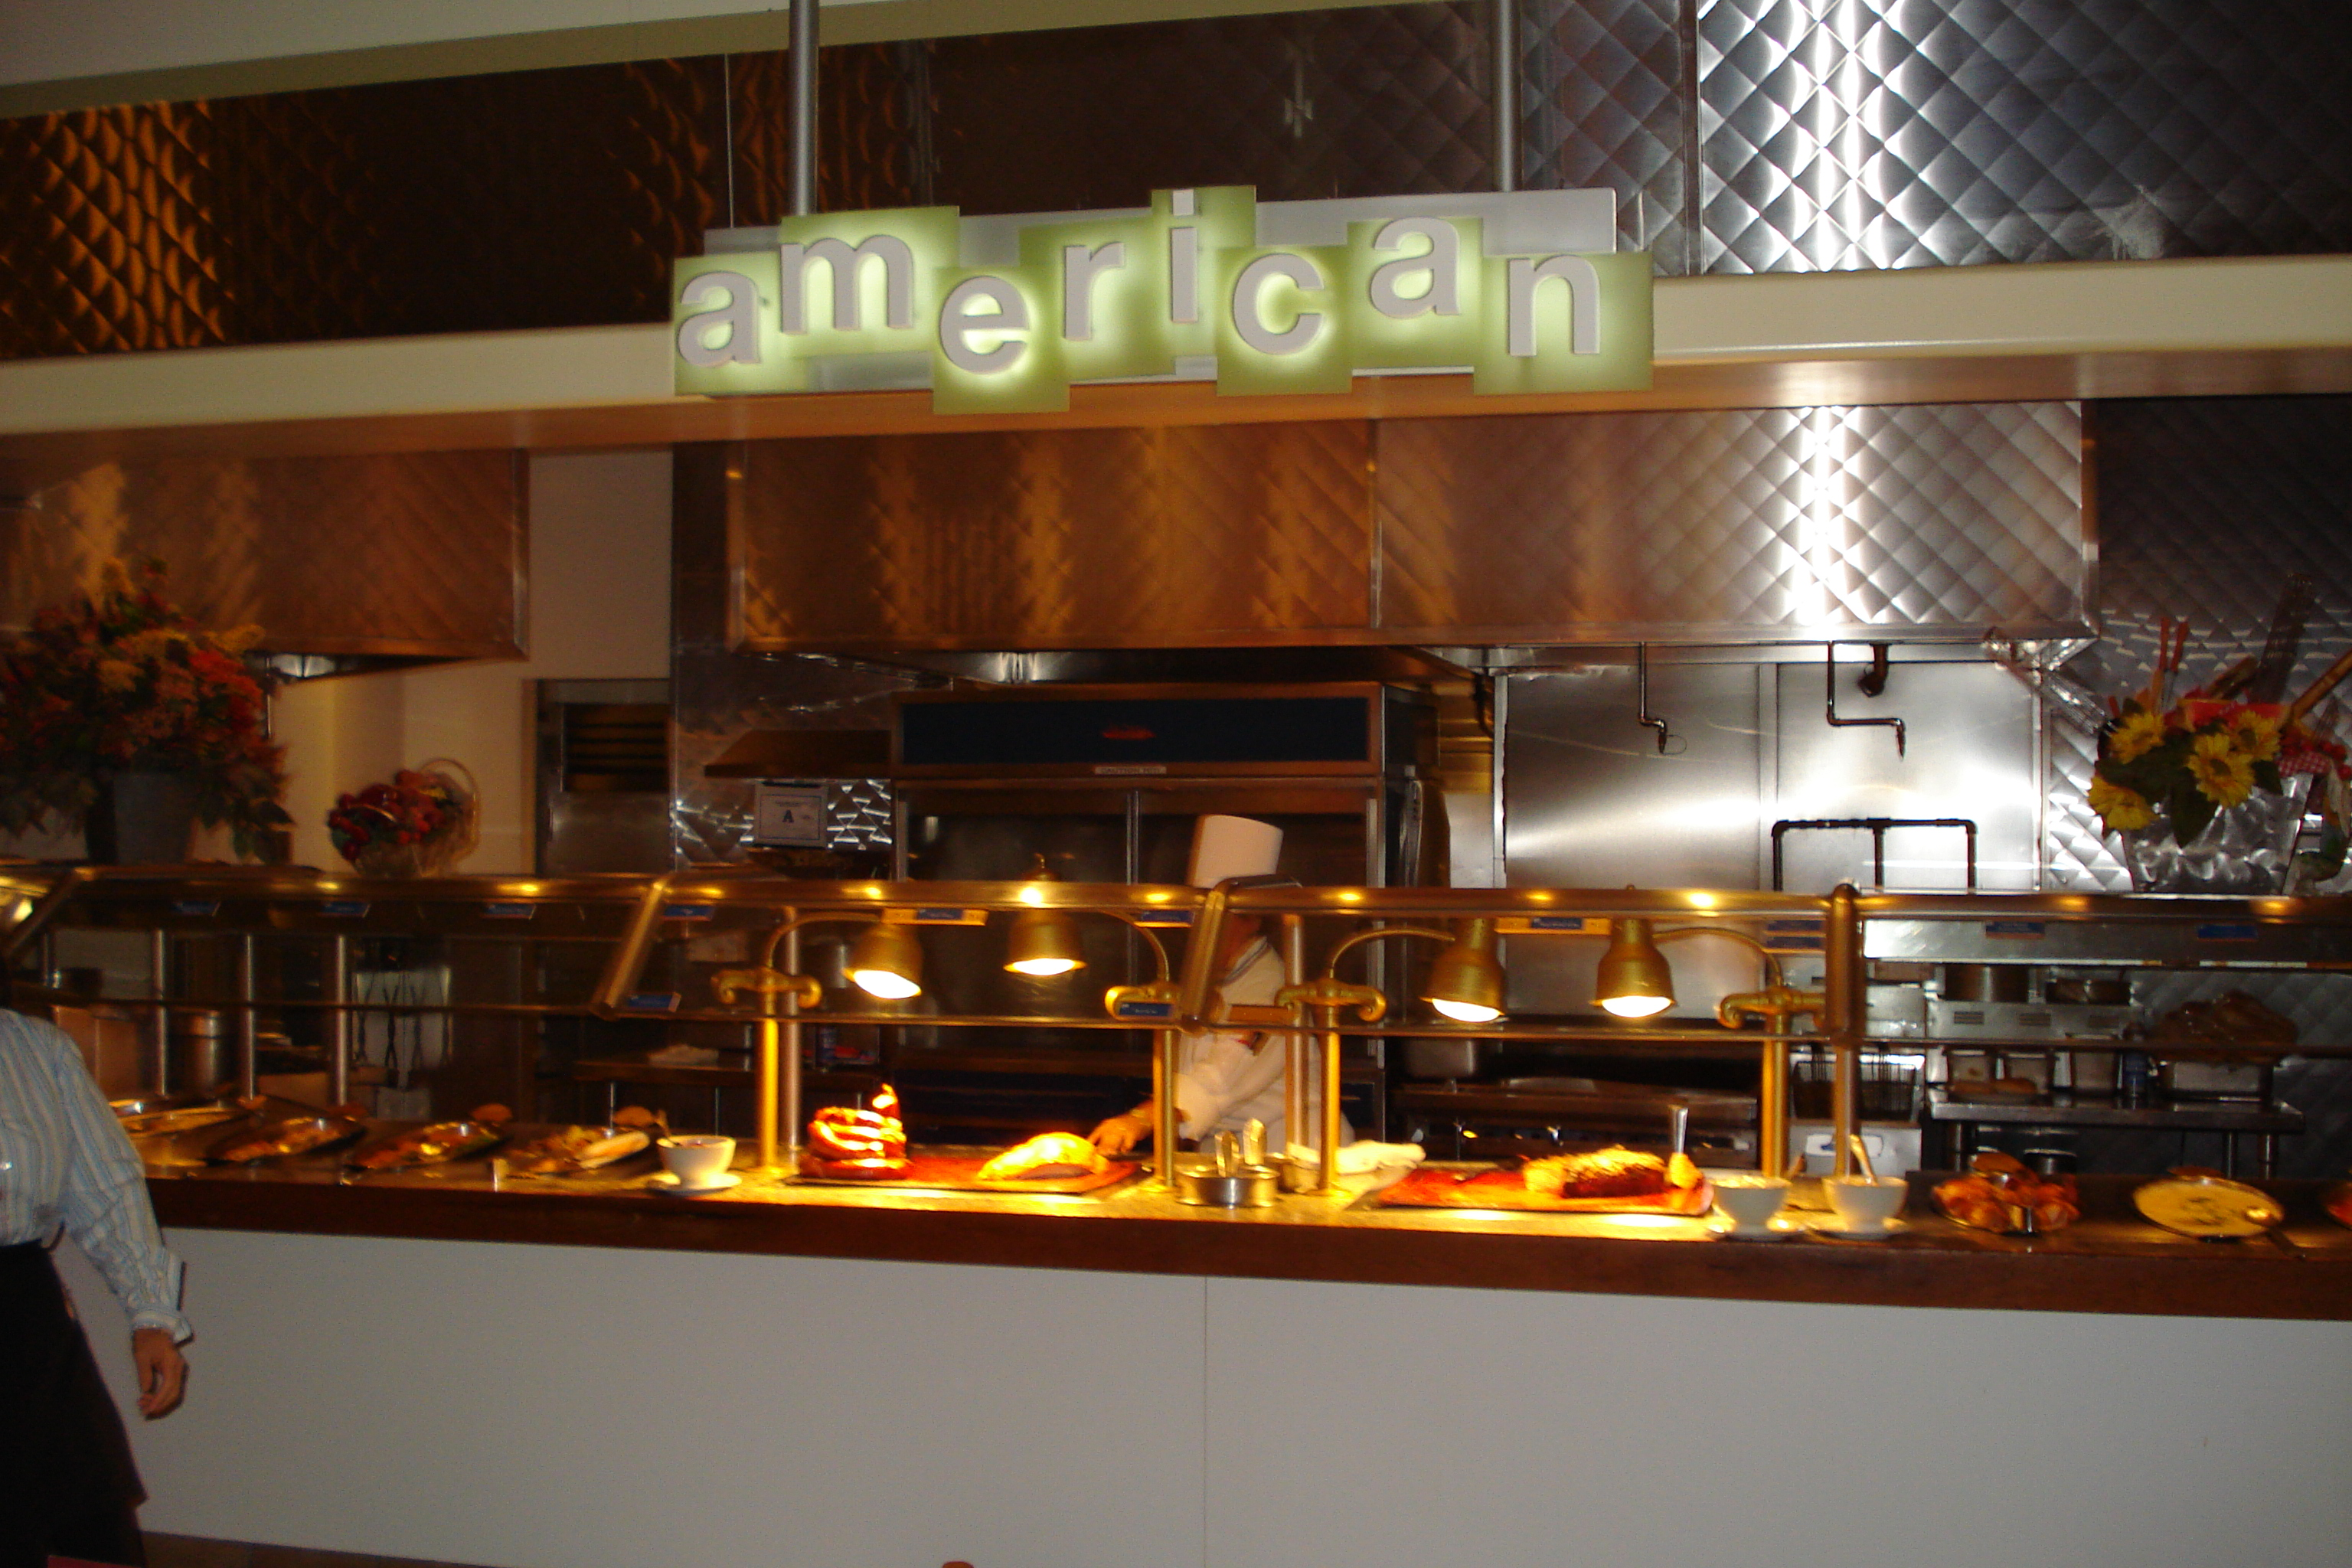 File spicemarket buffet american food jpg wikipedia for American cuisine wiki